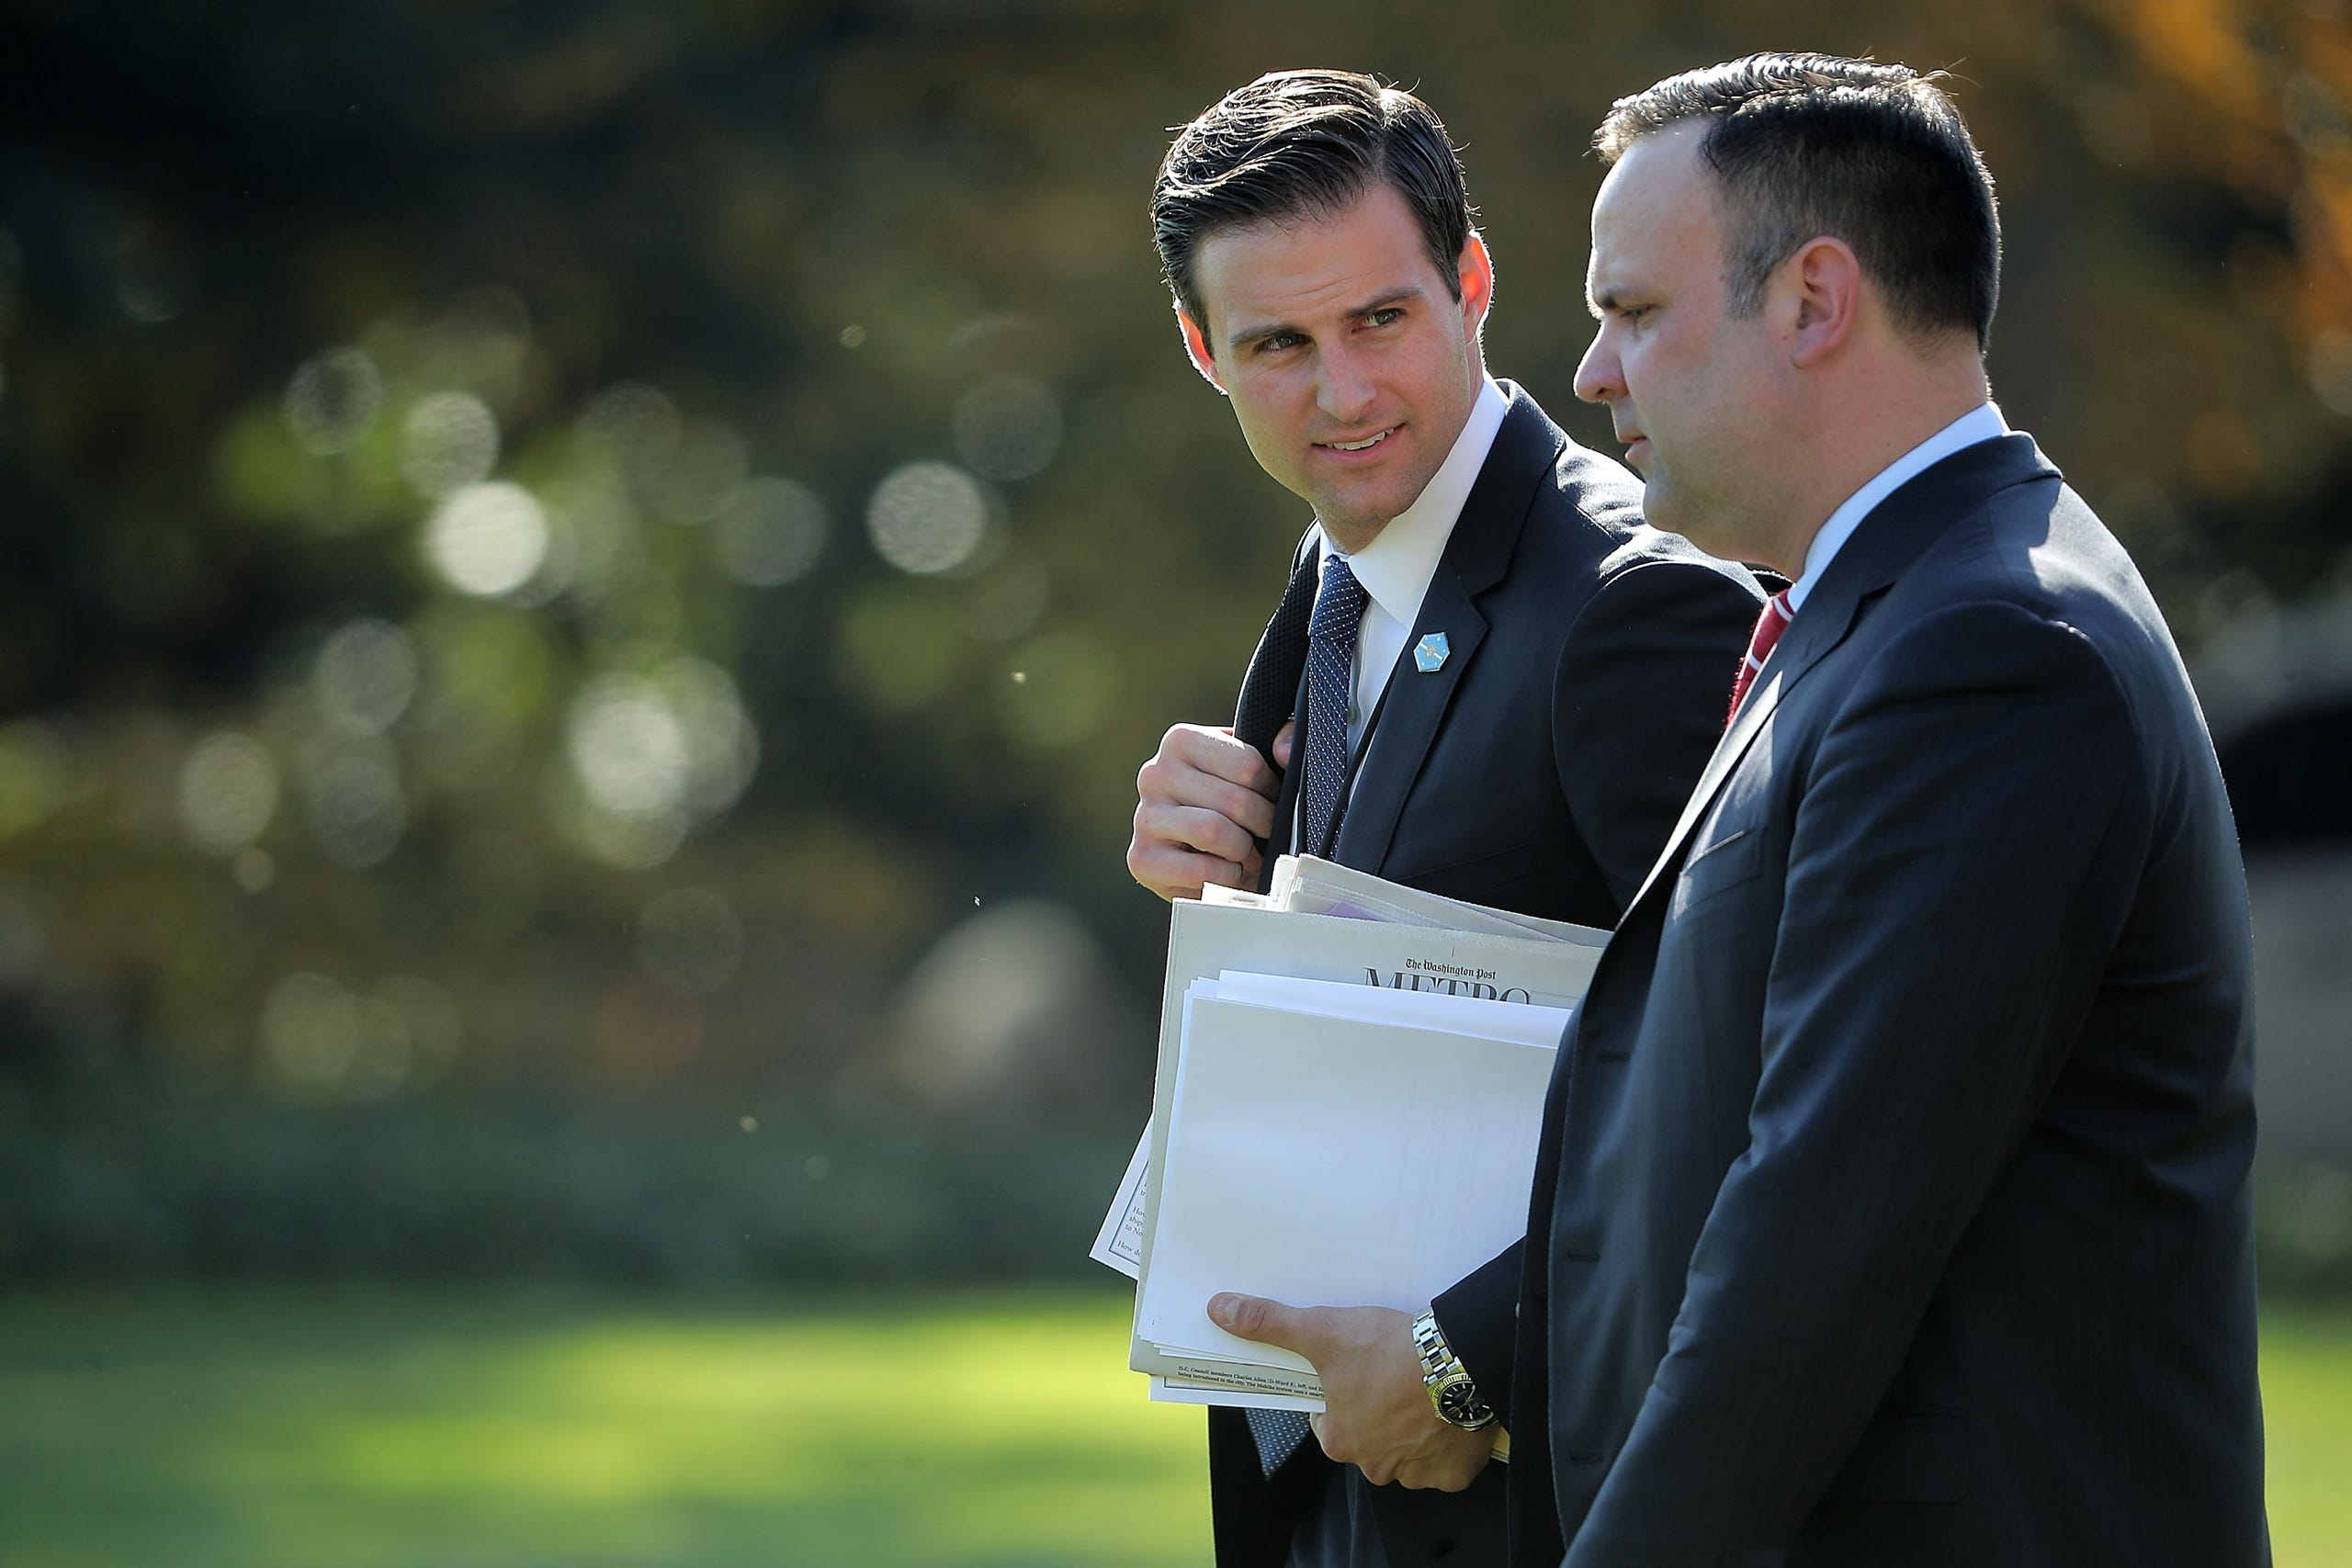 John McEntee, personal aide to President Trump, left was fired, March 12, 2018, for unspecified security reasons. He's seen with White House Director of Social Media Dan Scavino leaving the White House Nov. 29, 2017.